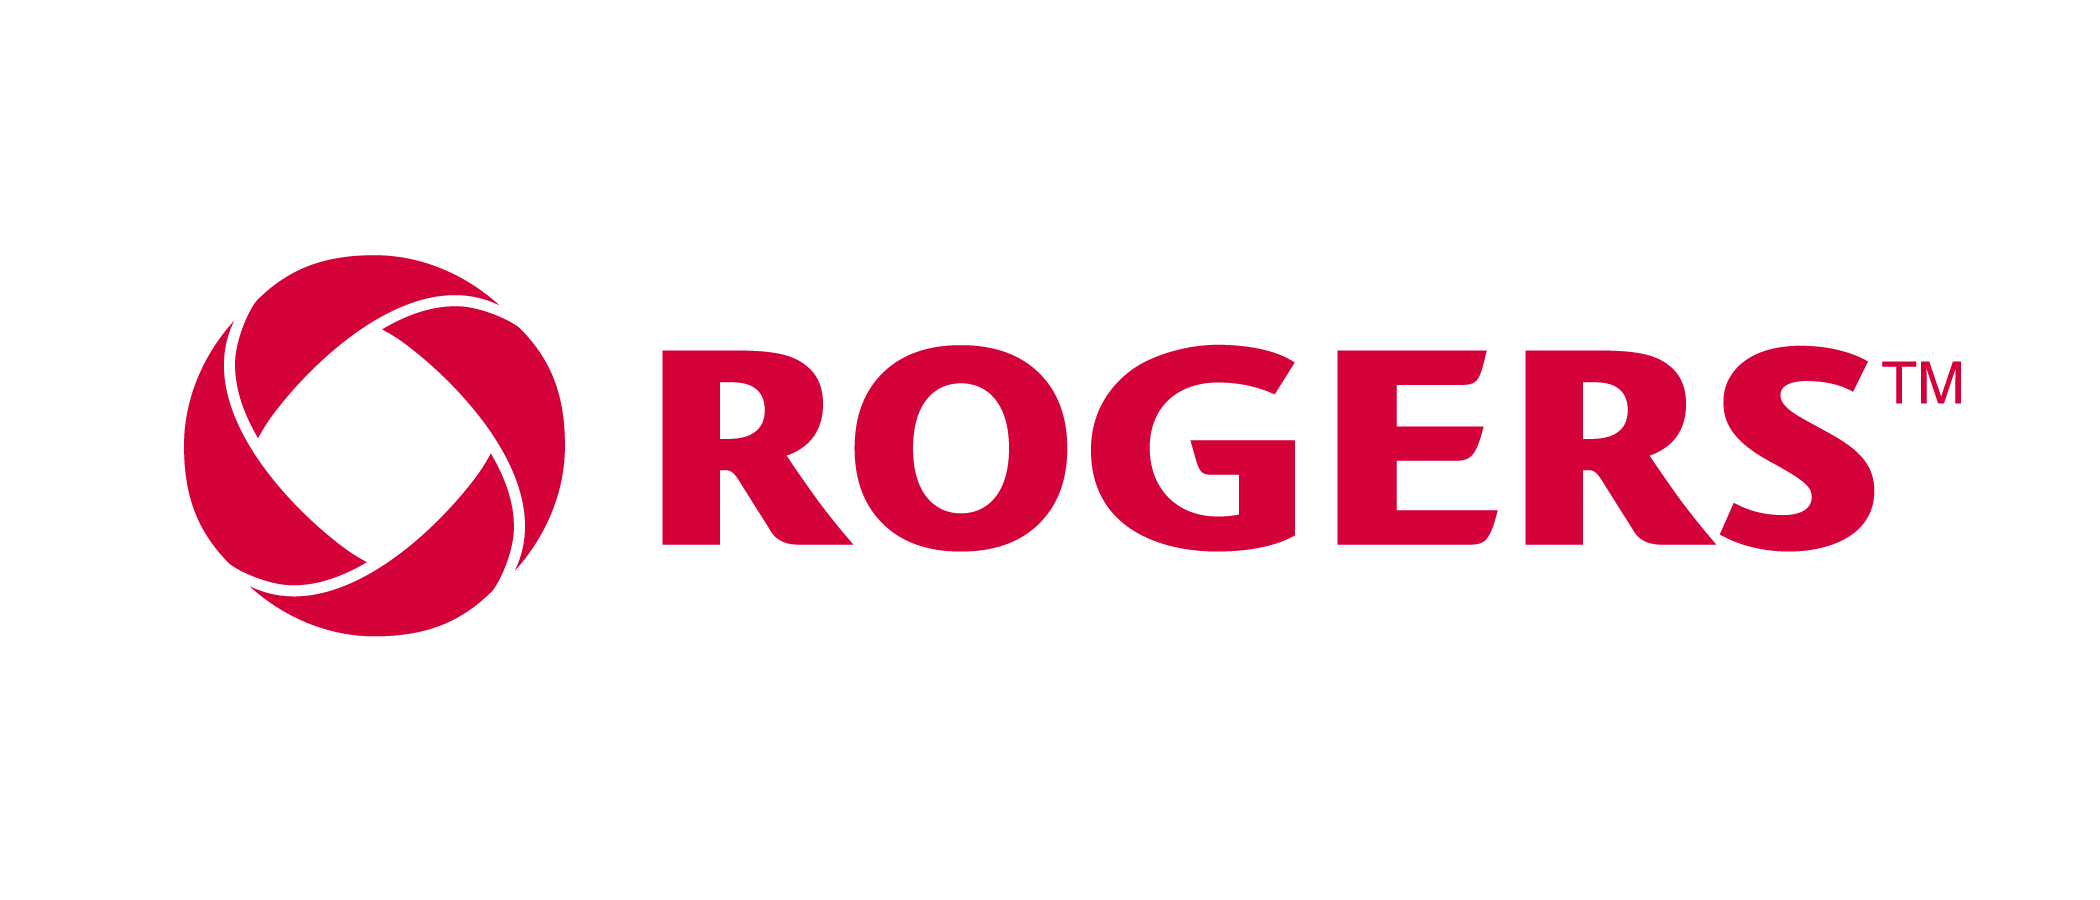 Rogers Communications « Logos & Brands Directory